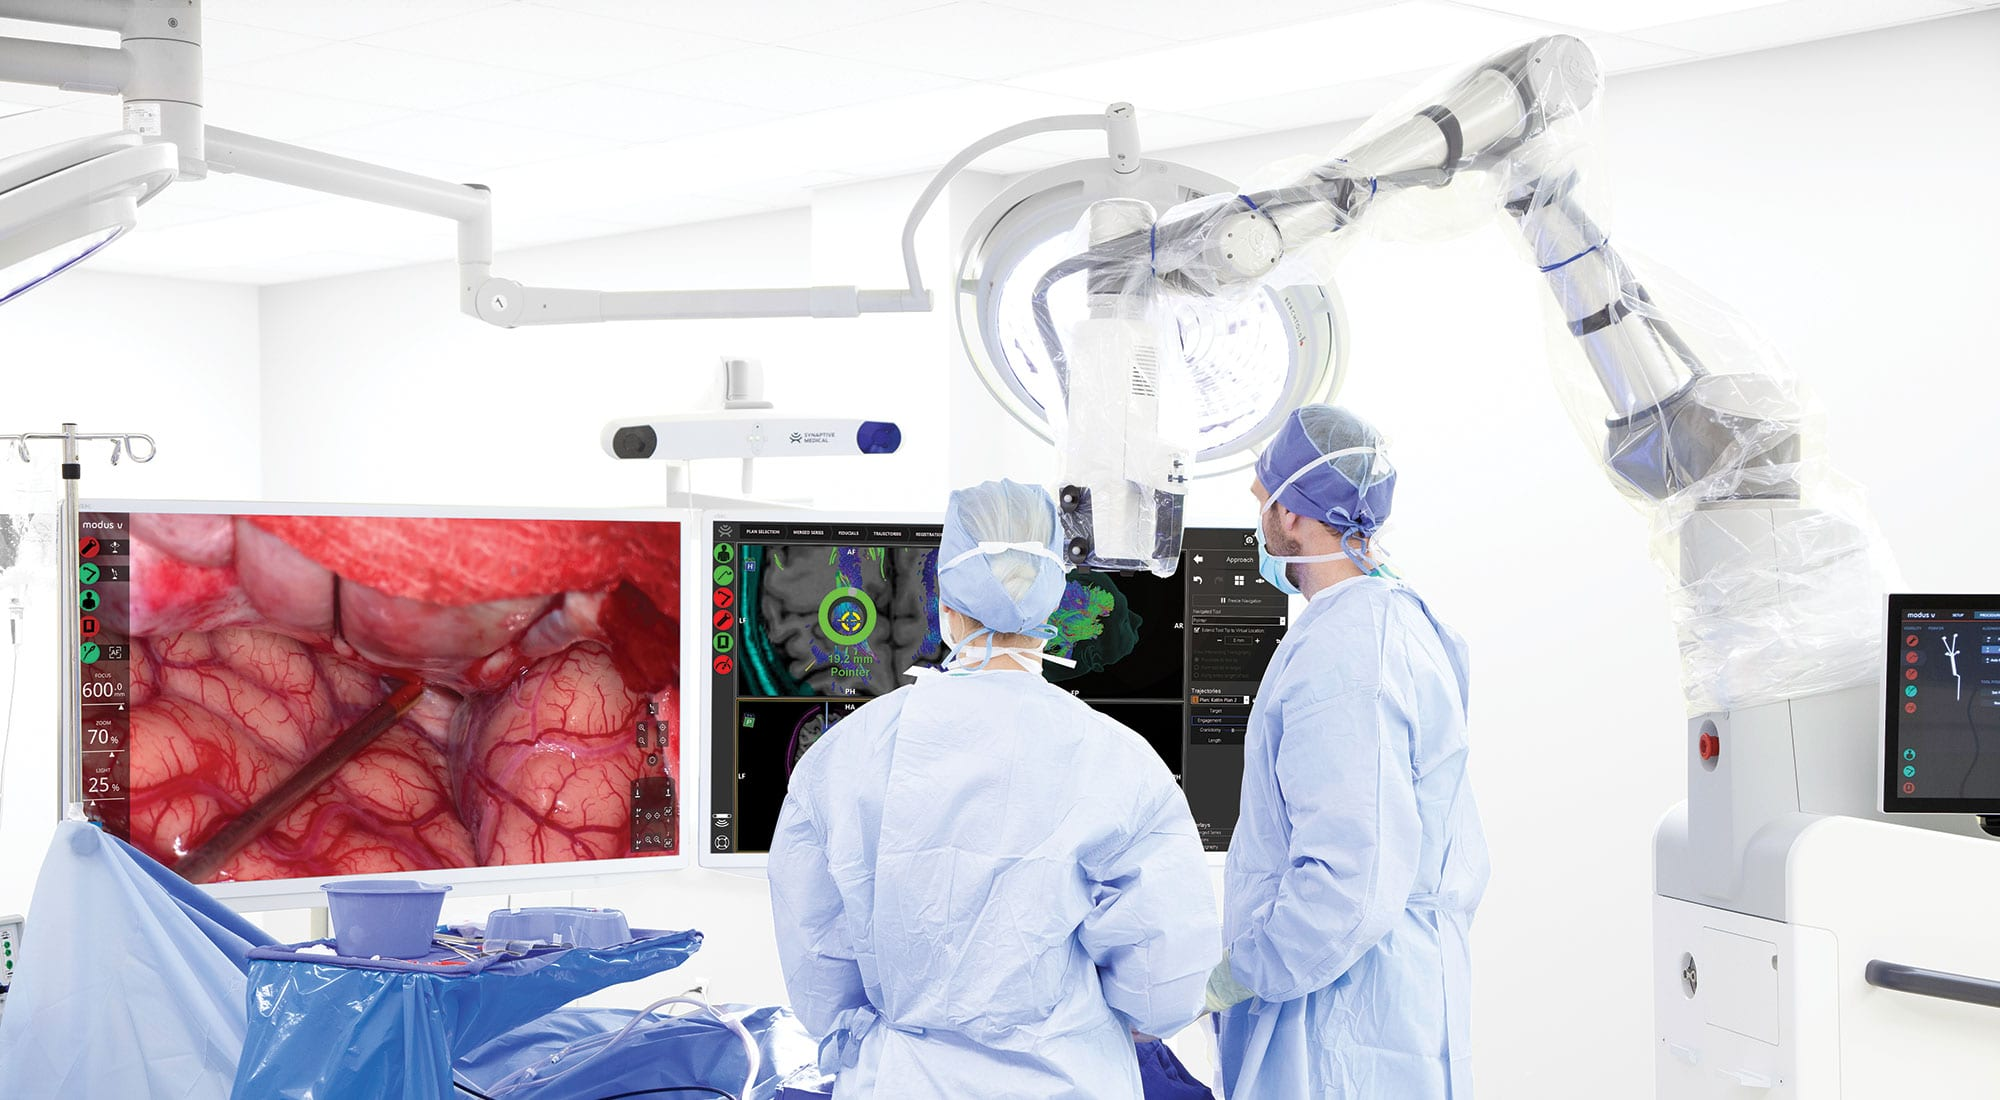 Smarter surgery: rebooting operating systems